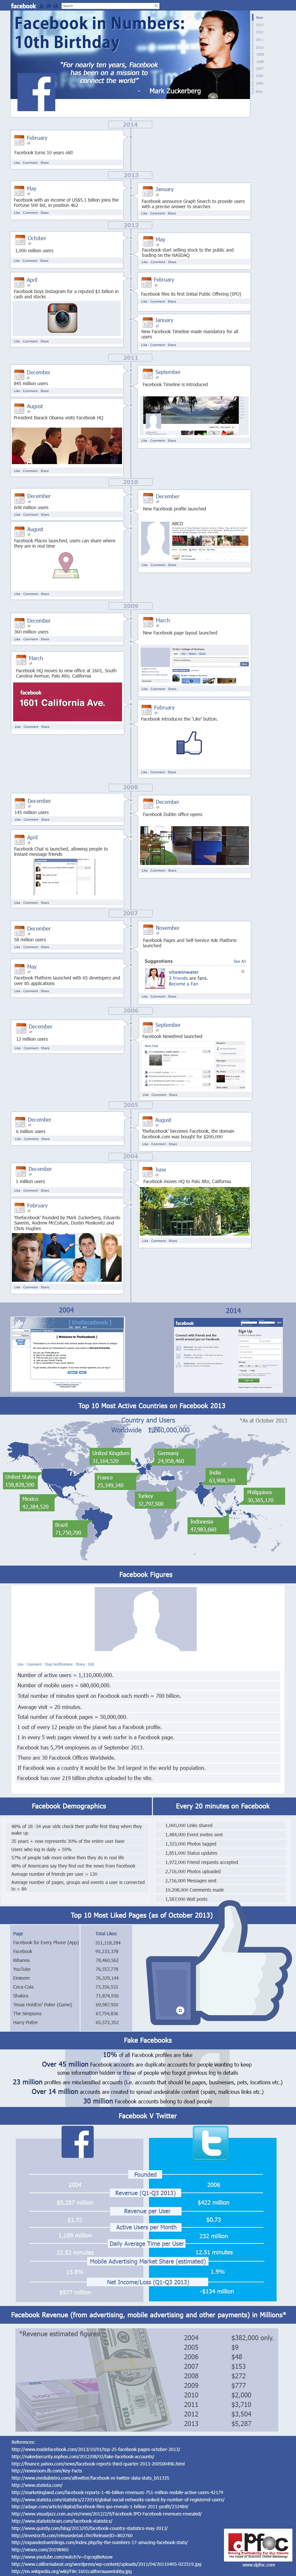 Facebook Celebrate 10 years: An Infographic